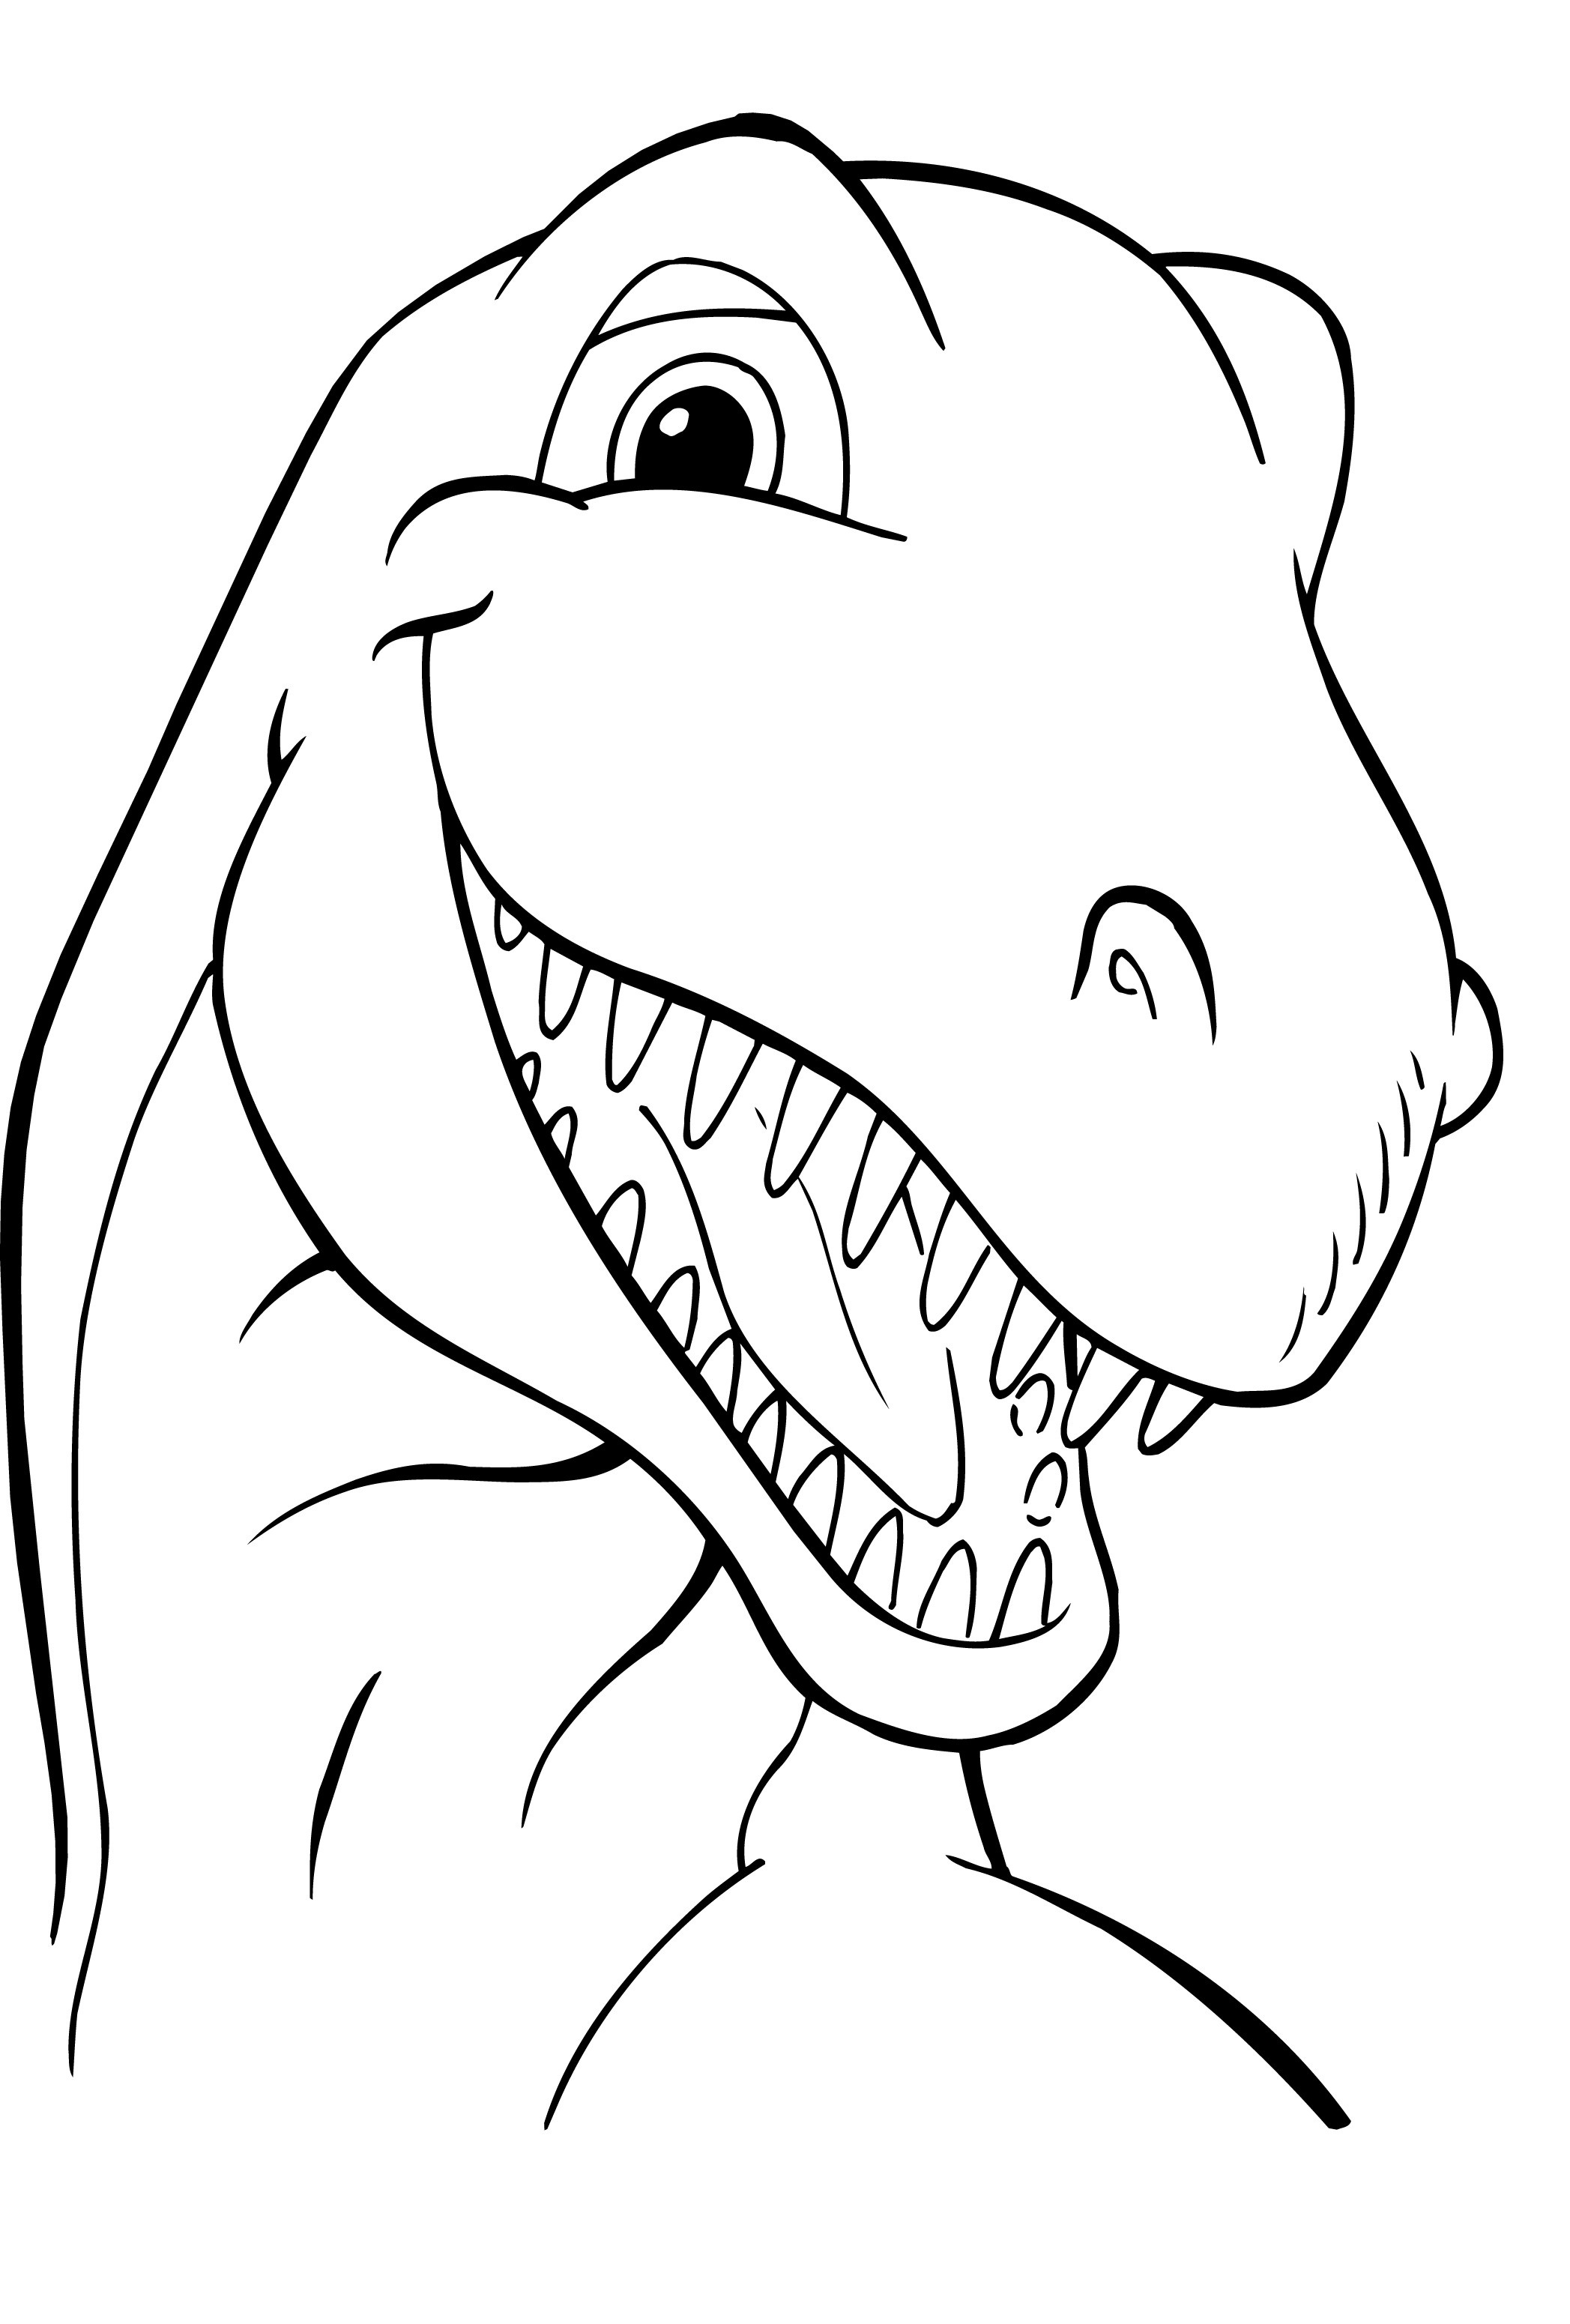 dinosaur printable pictures coloring pages dinosaur free printable coloring pages printable dinosaur pictures